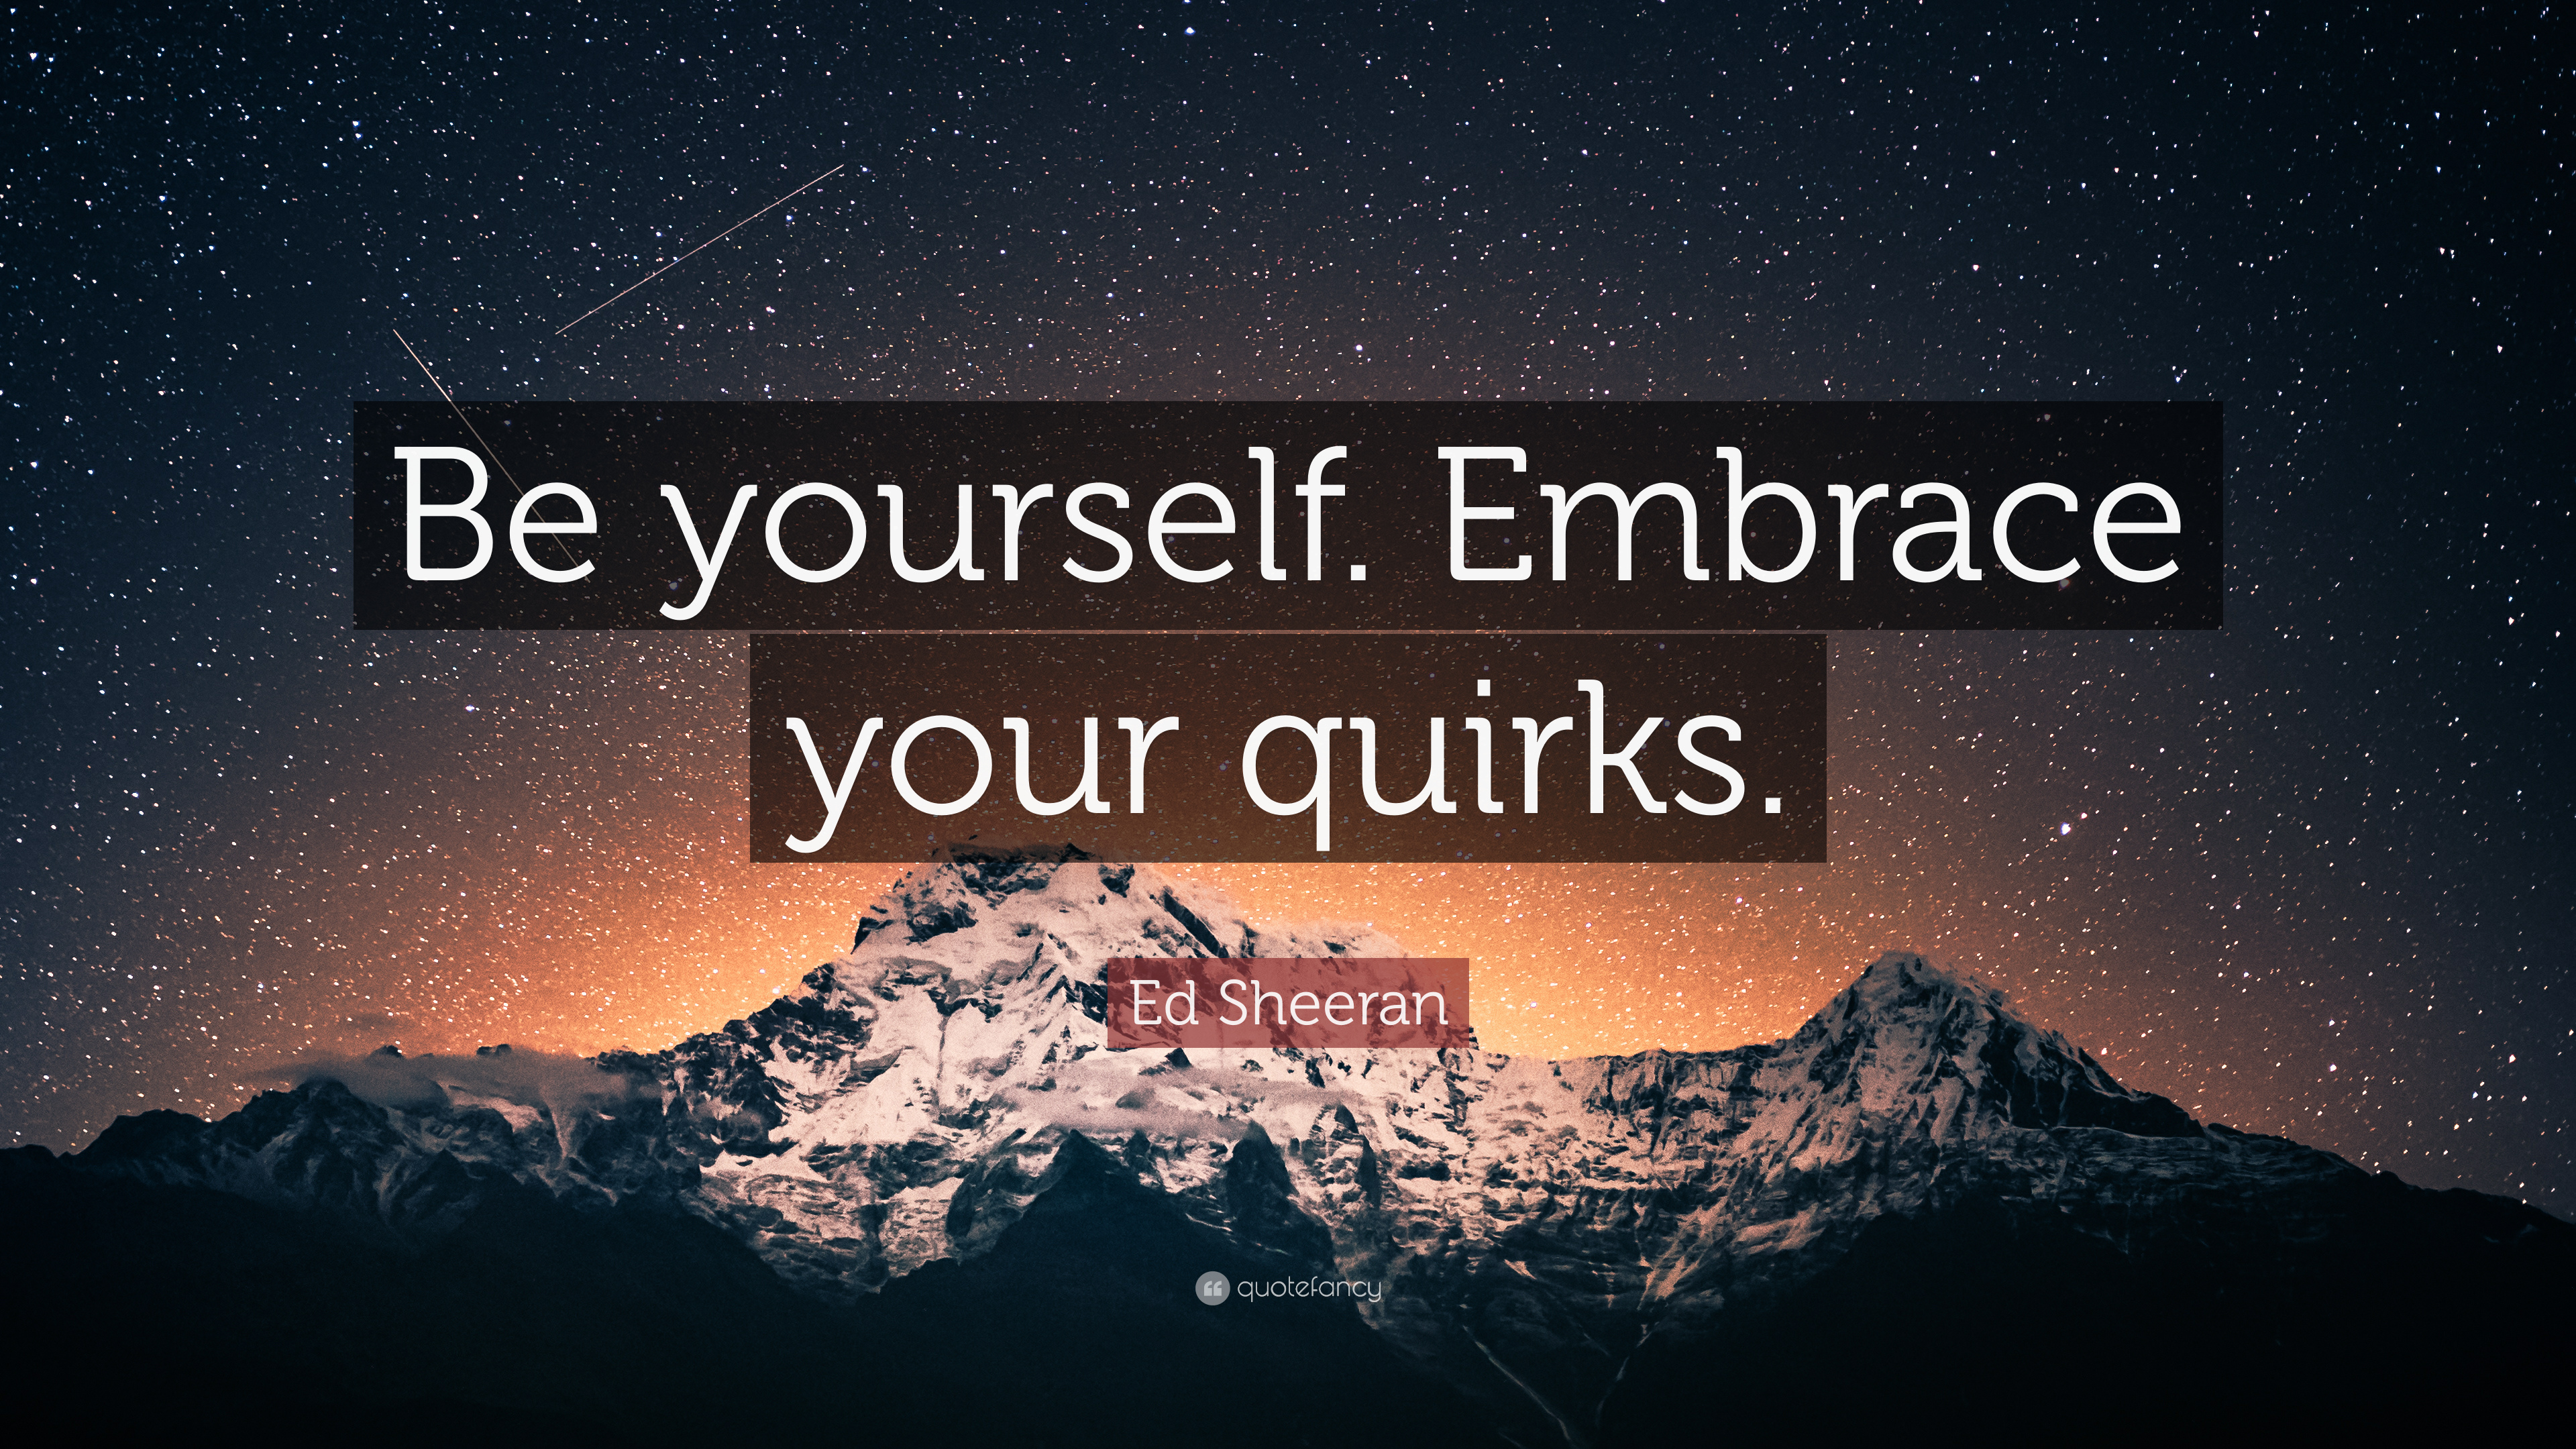 ed sheeran quote be yourself embrace your quirks 7